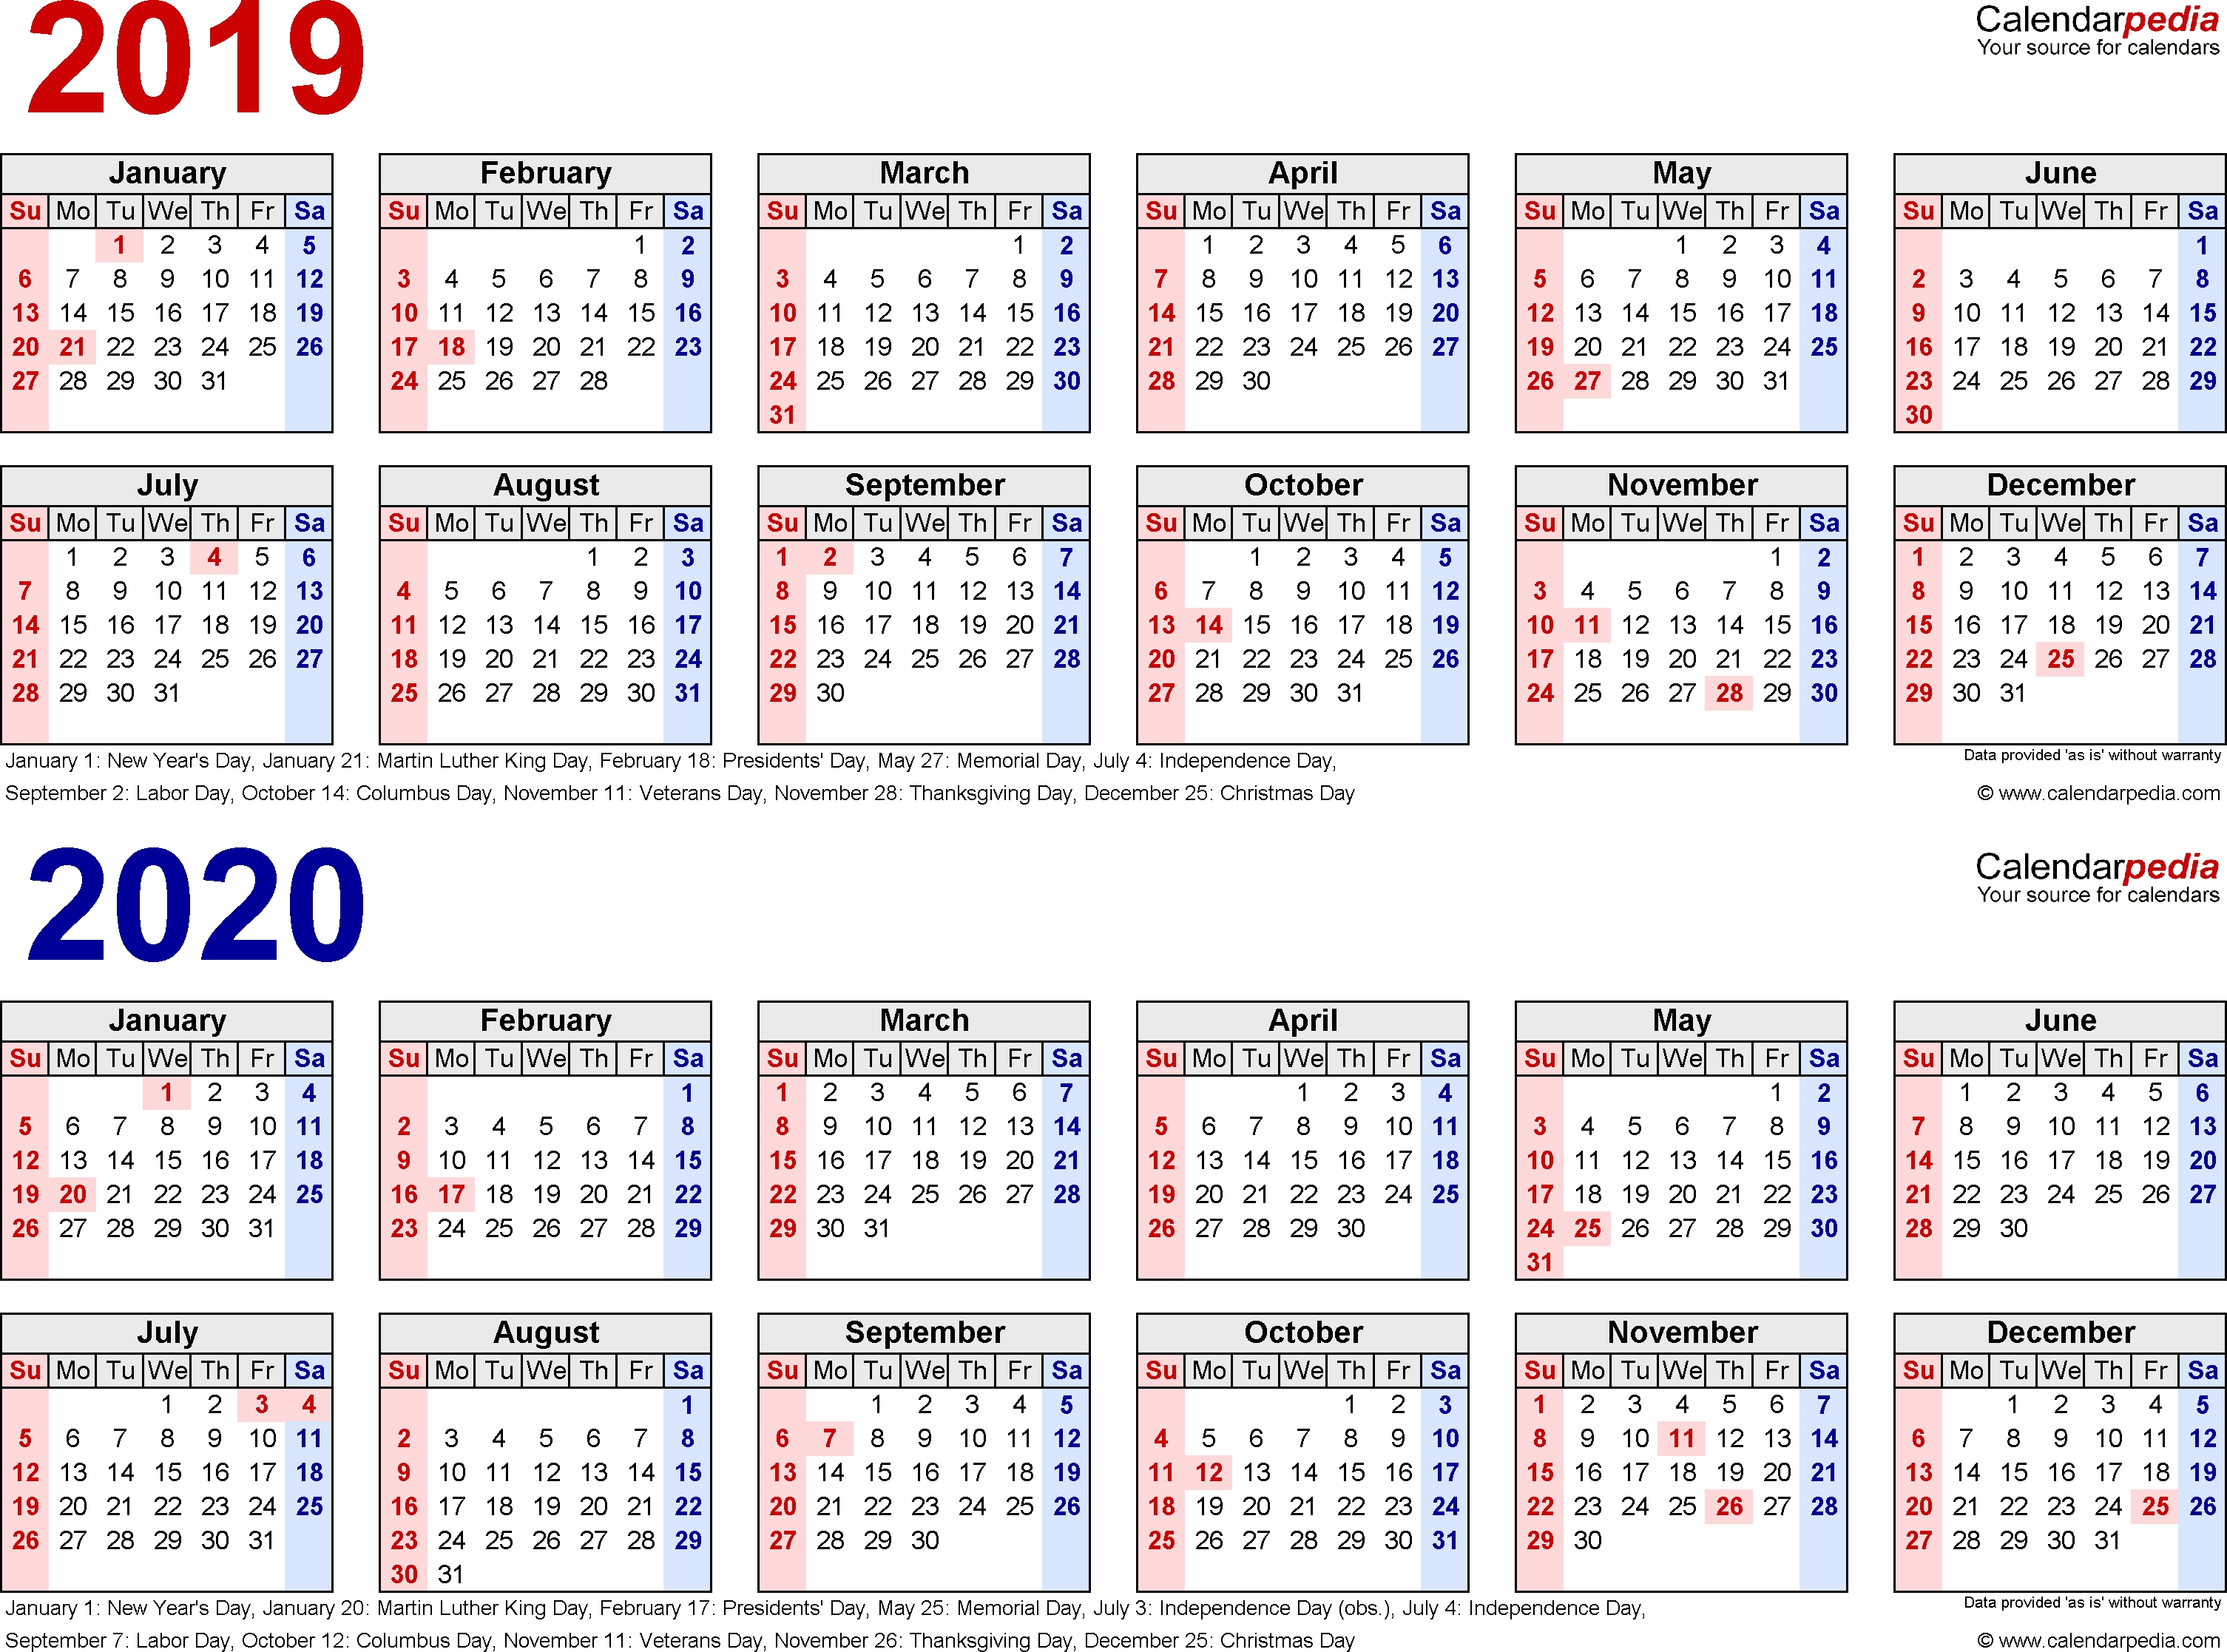 2019-2020 Calendar - Free Printable Two-Year Excel Calendars within 2020 Week Wise Calendar